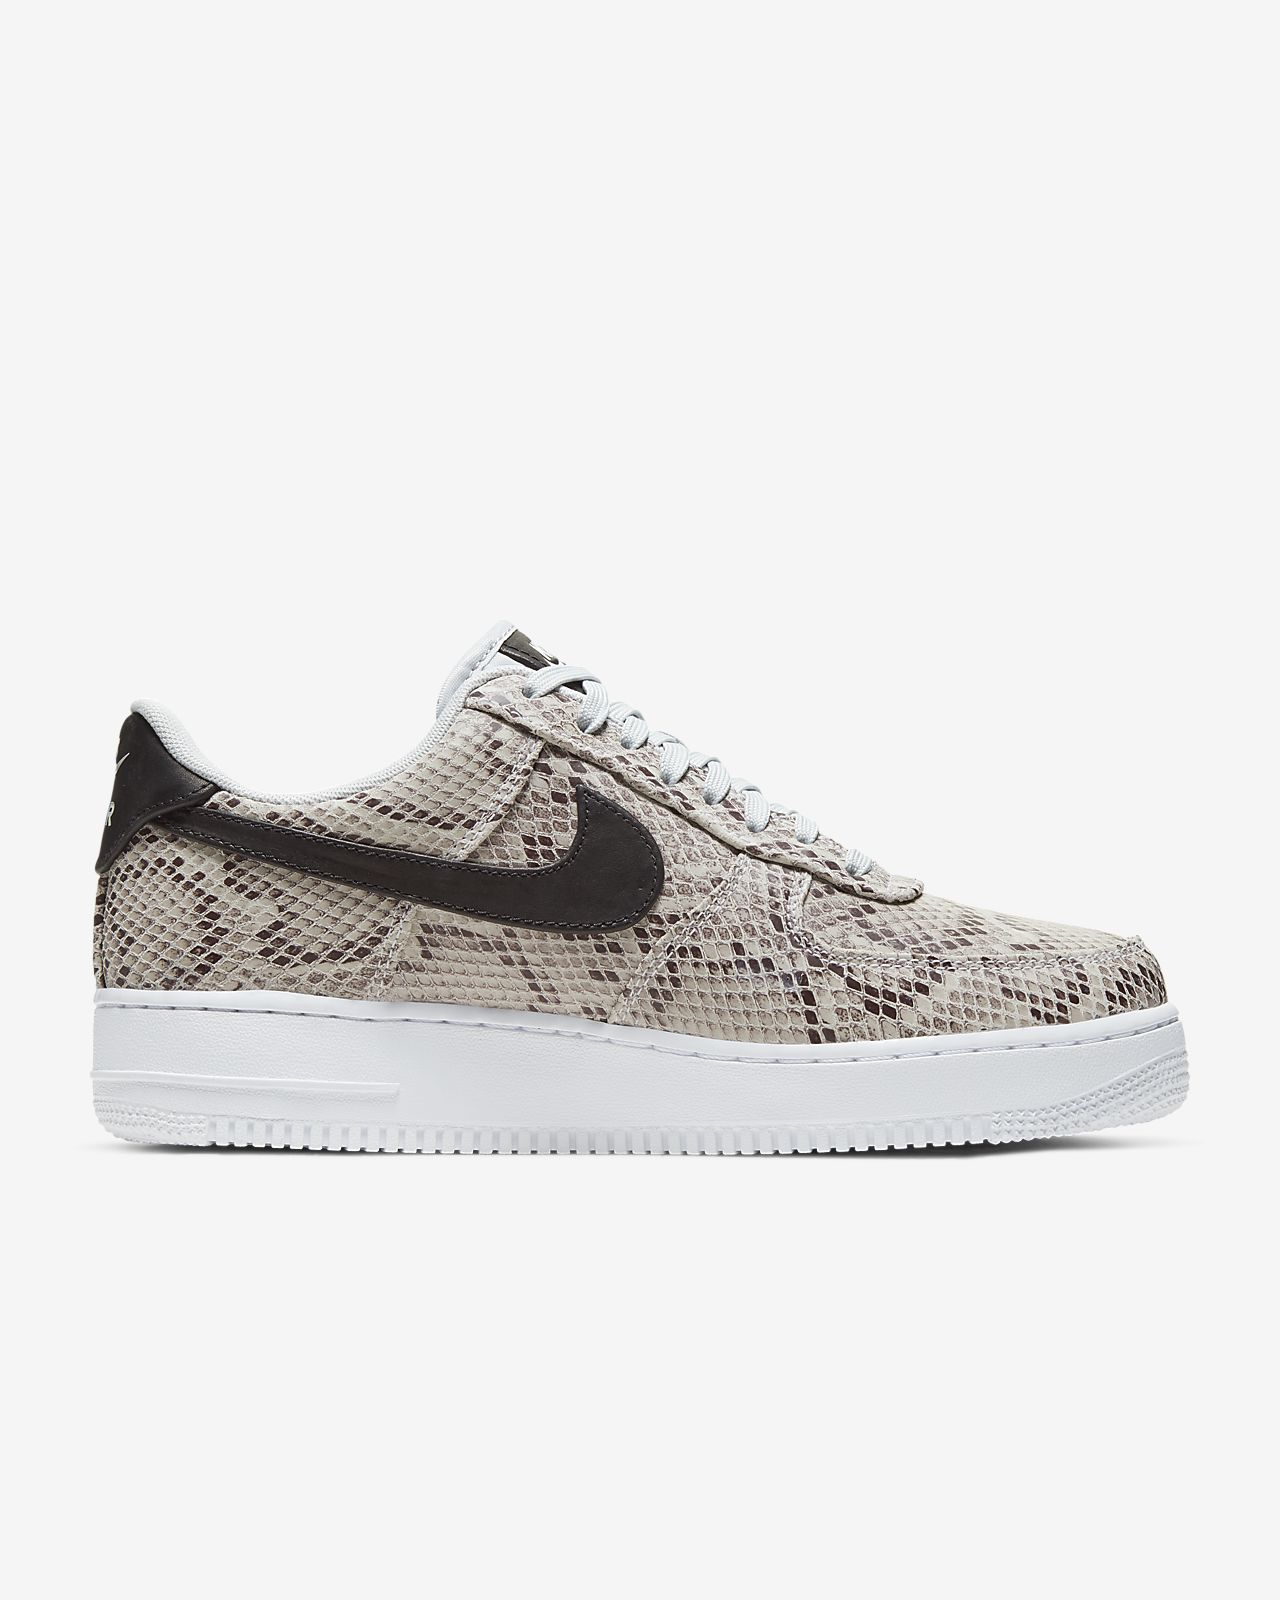 2air force 1 07 premium